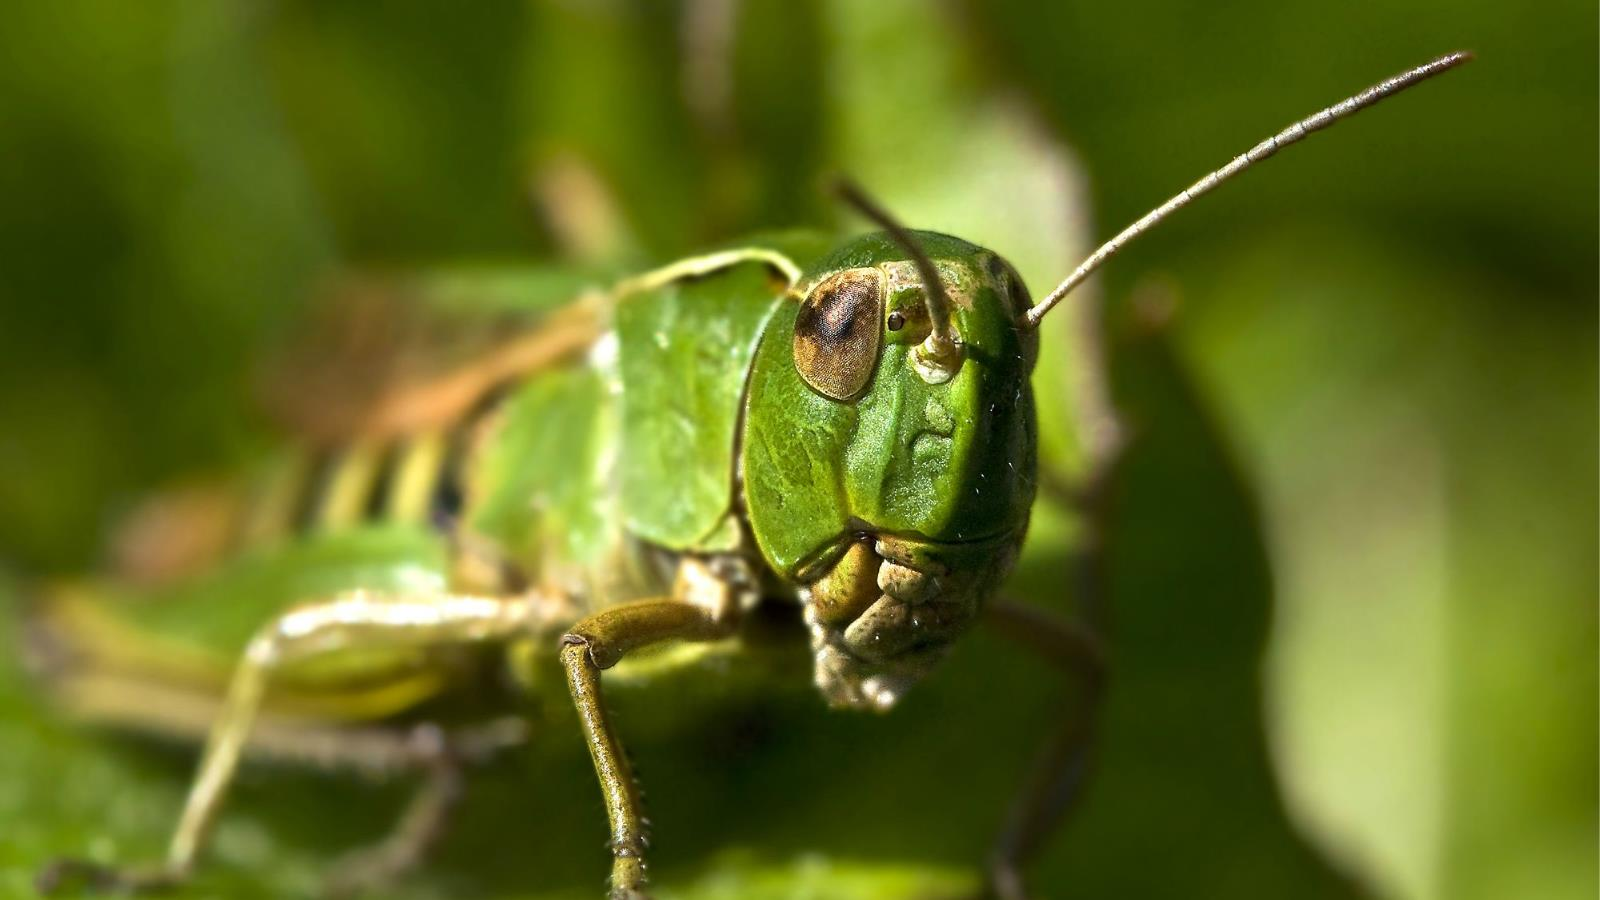 grasshopper wallpaper and background | 1600x900 | id:425173